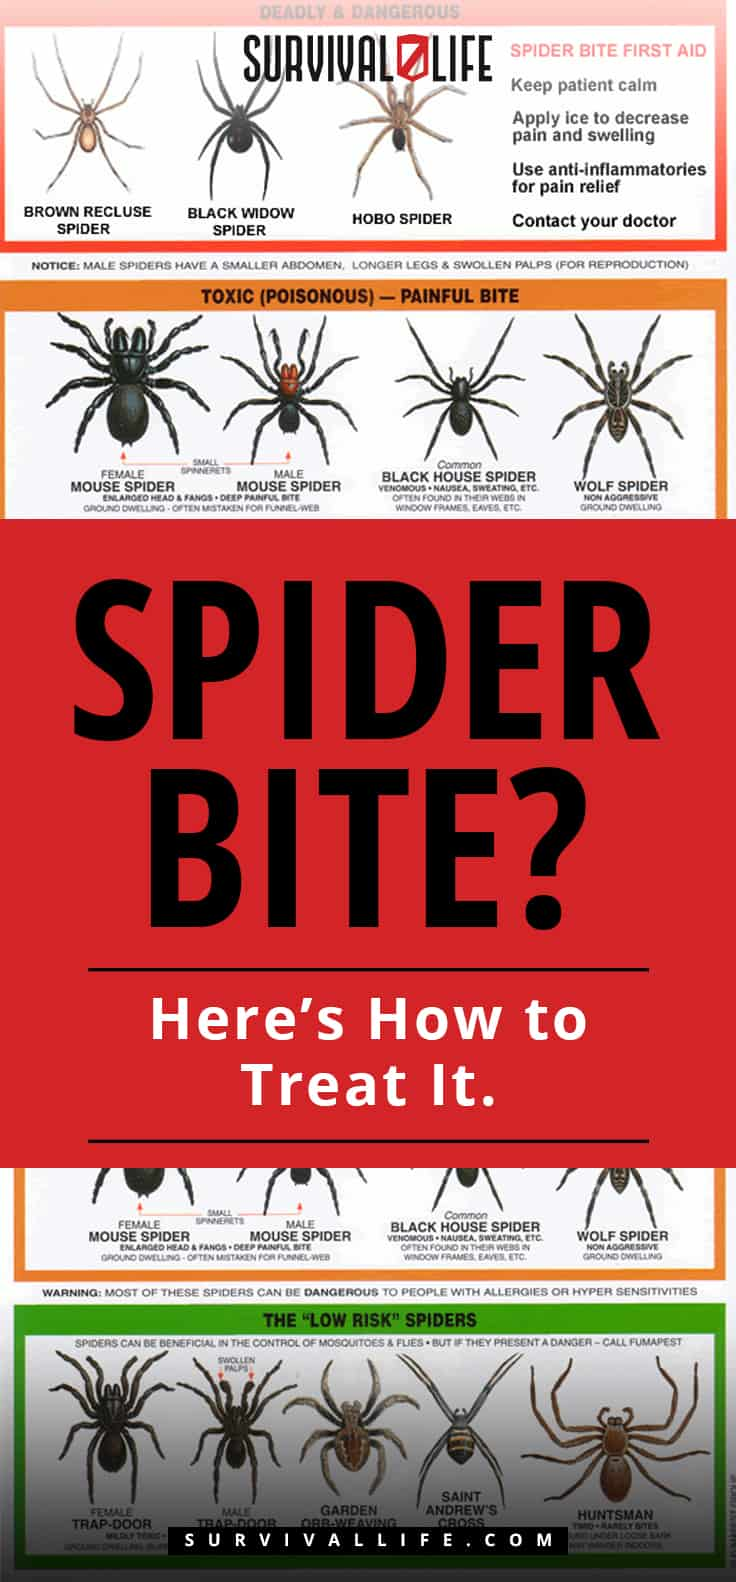 Spider Bite | Spider Bite? Here's How to Treat It.